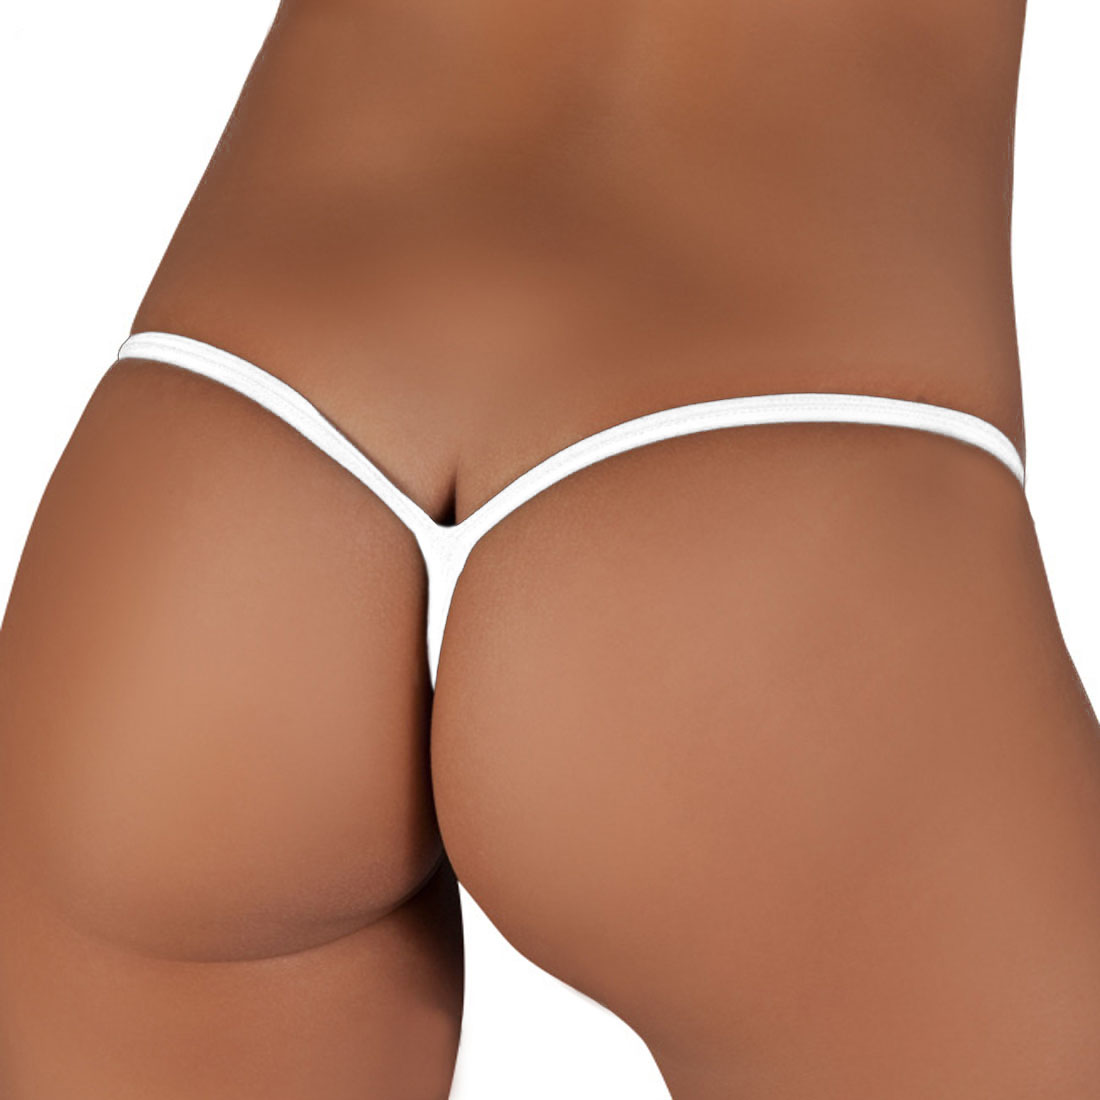 + men's thongs underwear in the sexiest cuts, freshest colors, and most comfortable fabrics from top brands like Joe Snyder, Cover Male, Good Devil and many more thongs. Show off your cheeks, tease and entice. It looks like you're not wearing any unde.